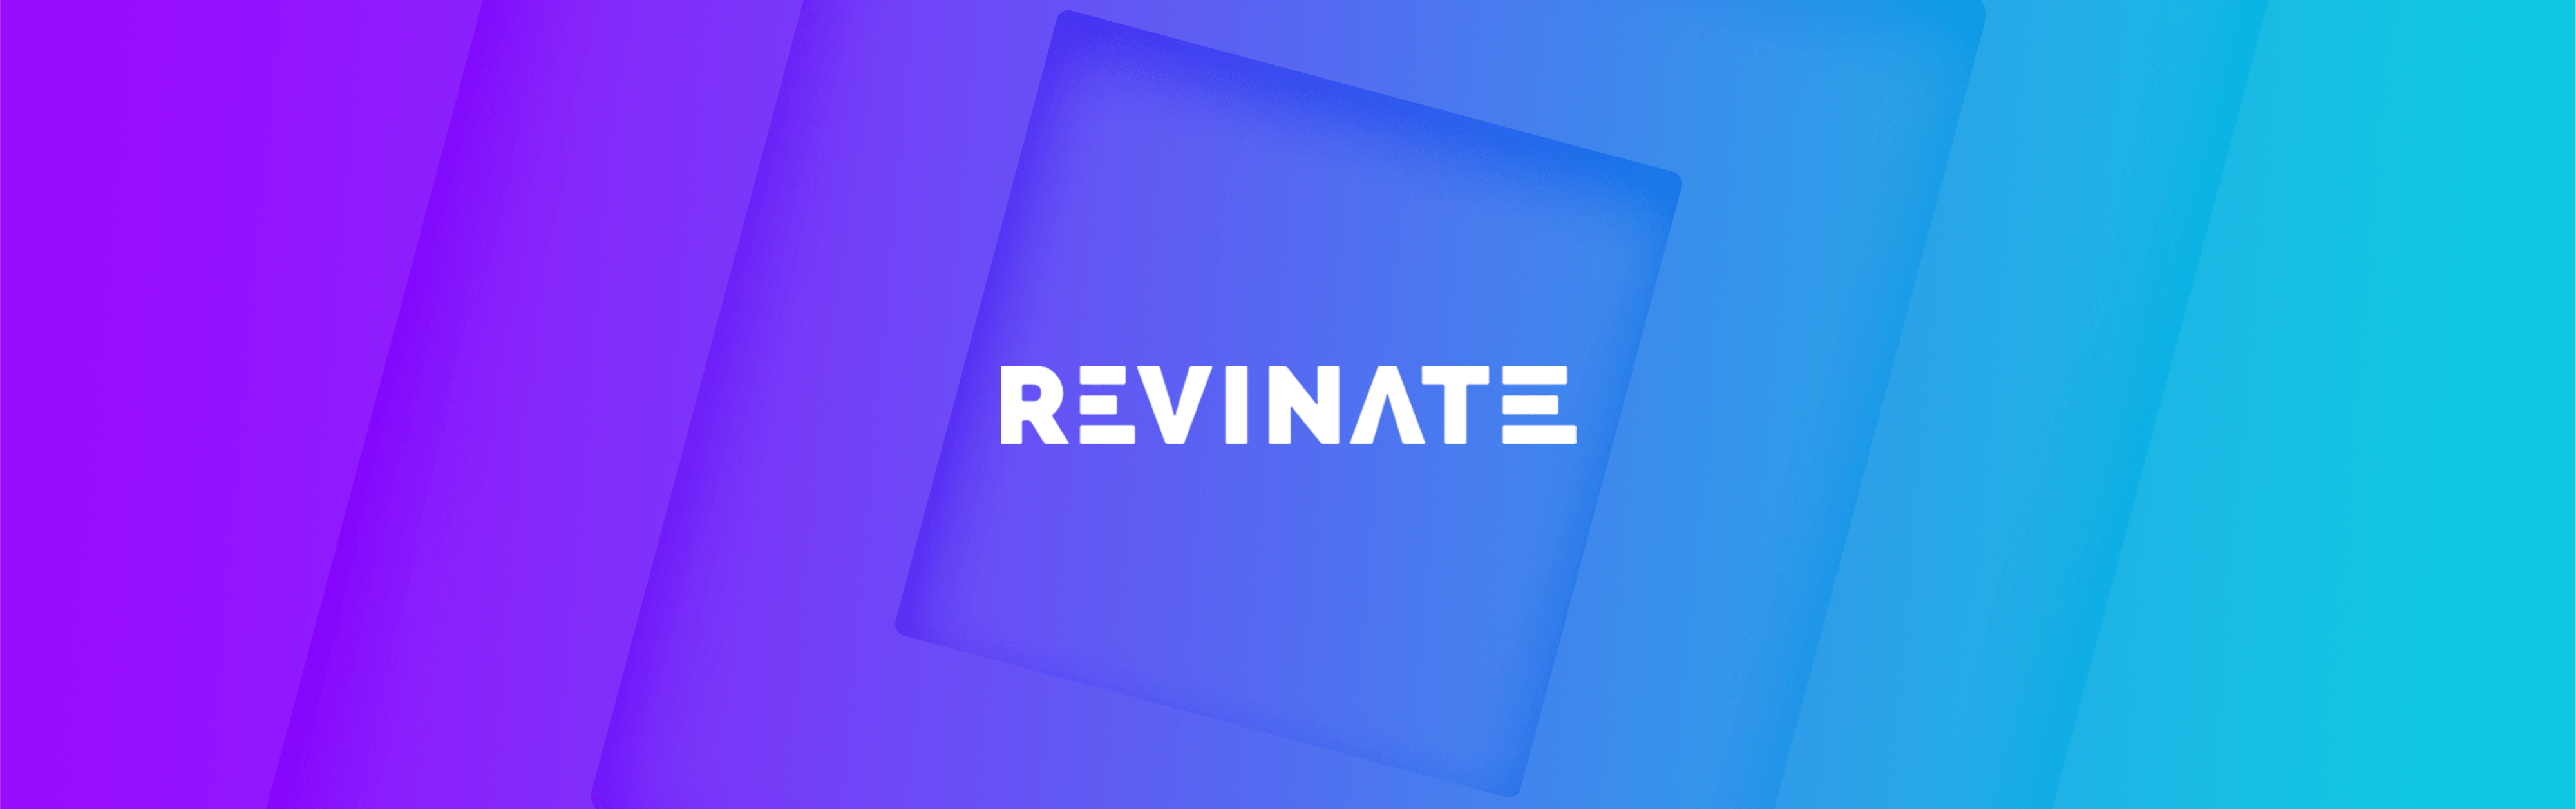 Revinate